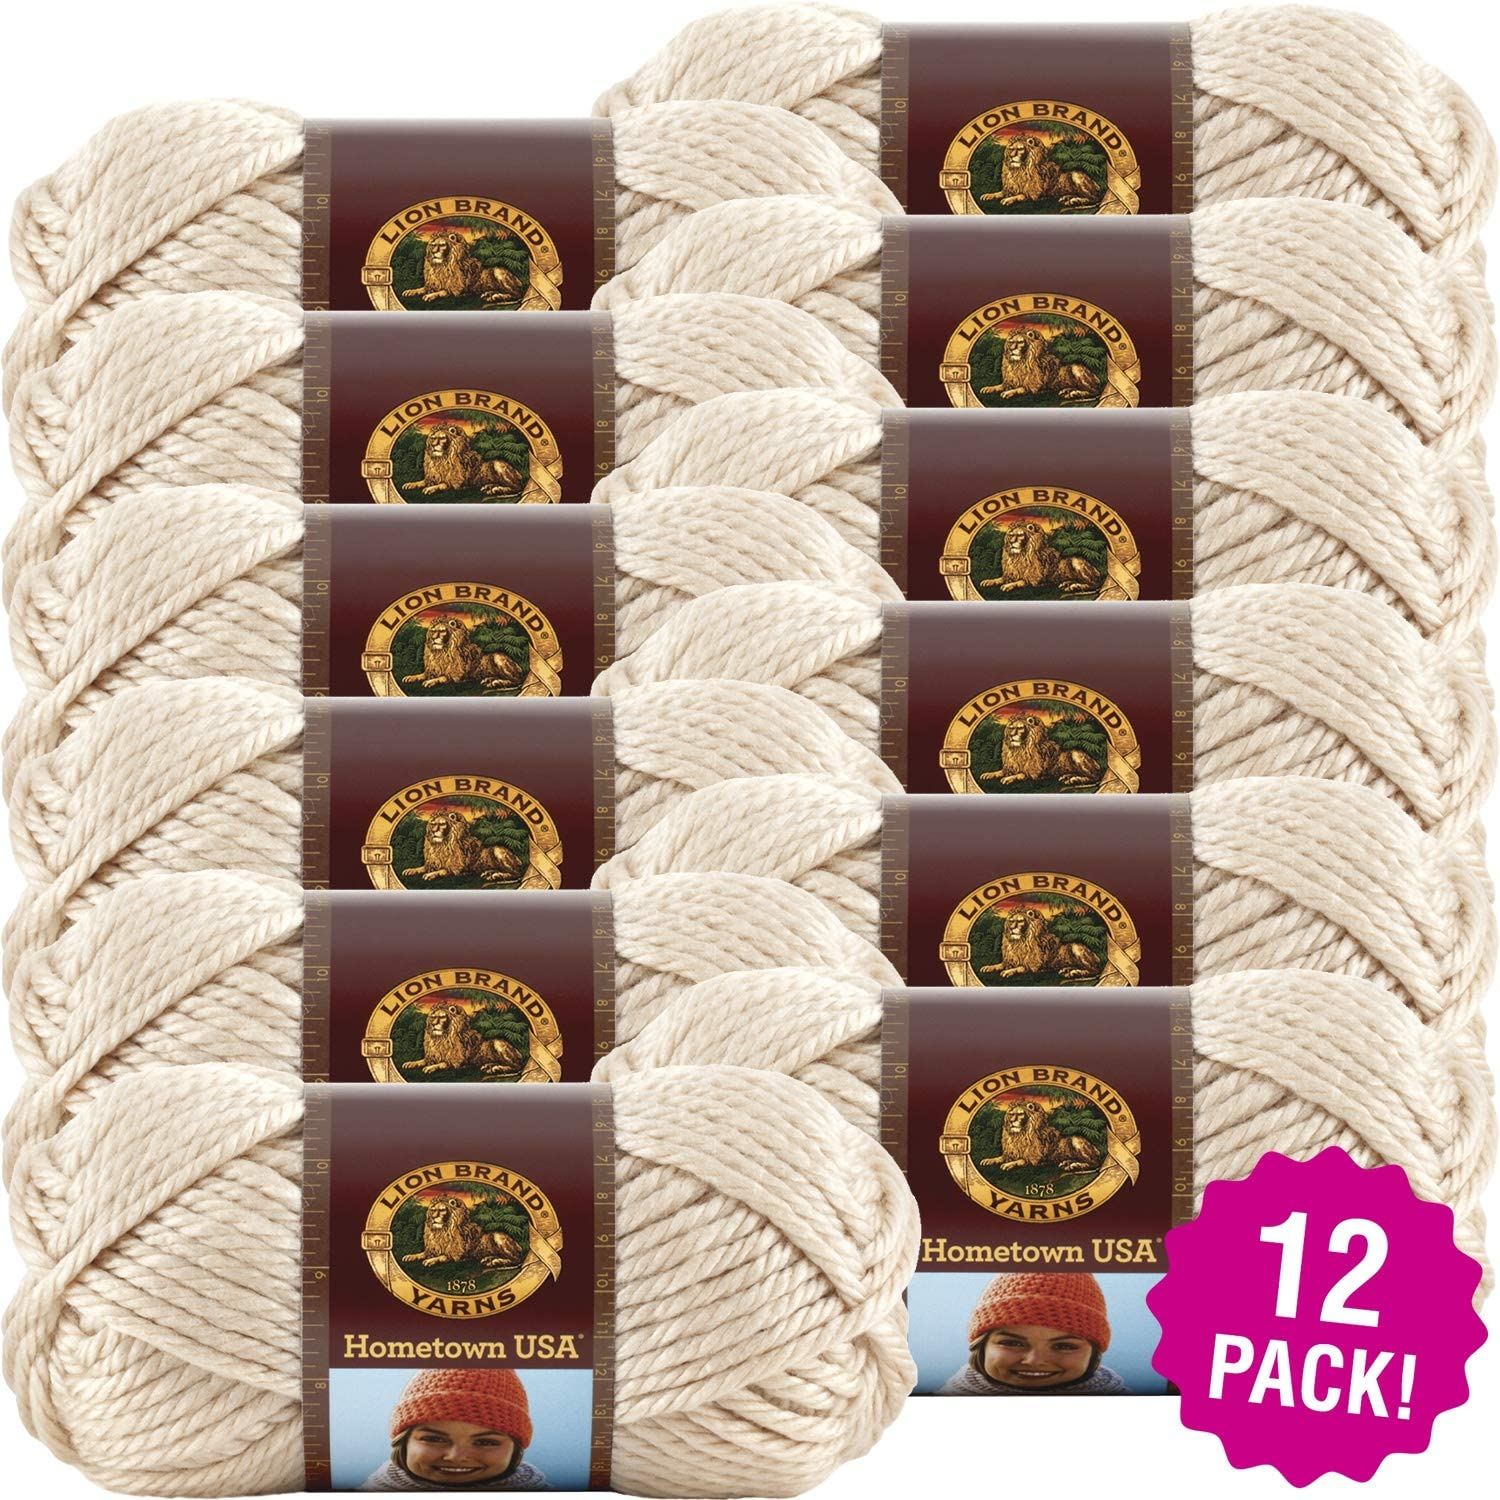 Lion Brand Los Angeles Tan Hometown USA Yarn 12/Pk 12 Pack